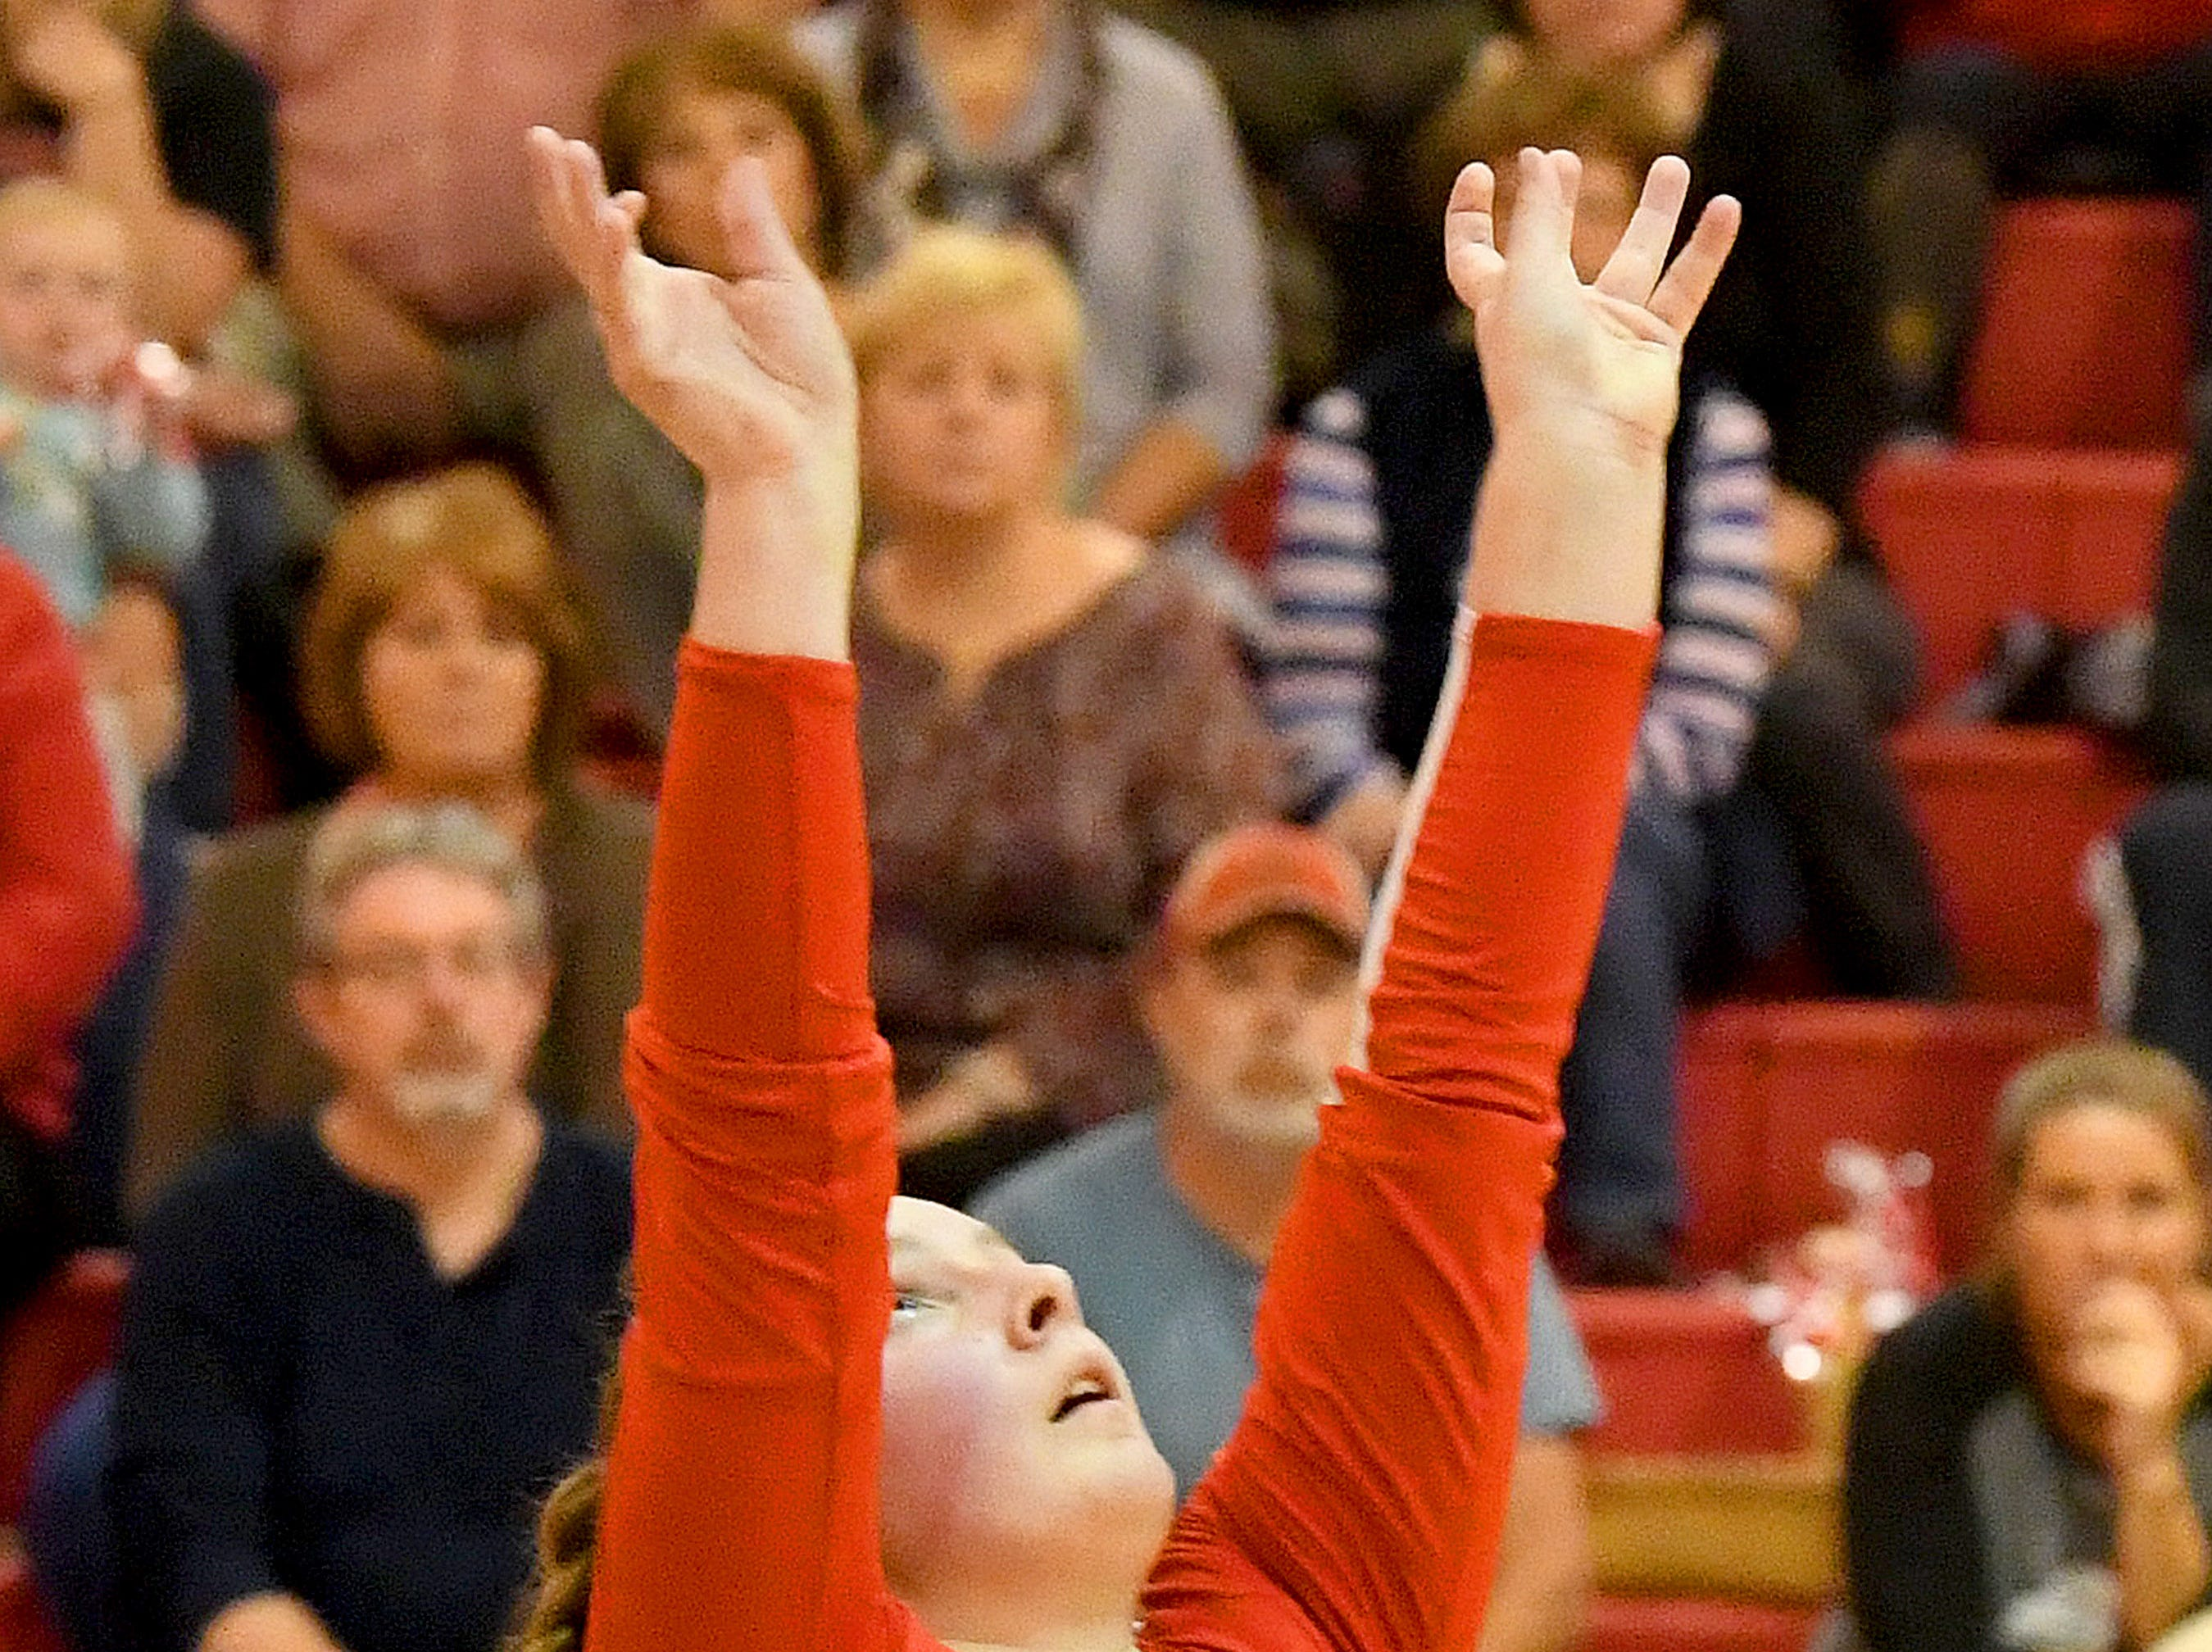 Riverheads' Dayton Moore sets the ball during the Region 1B volleyball championship played in Greenville on Wednesday, Nov. 7, 2018.